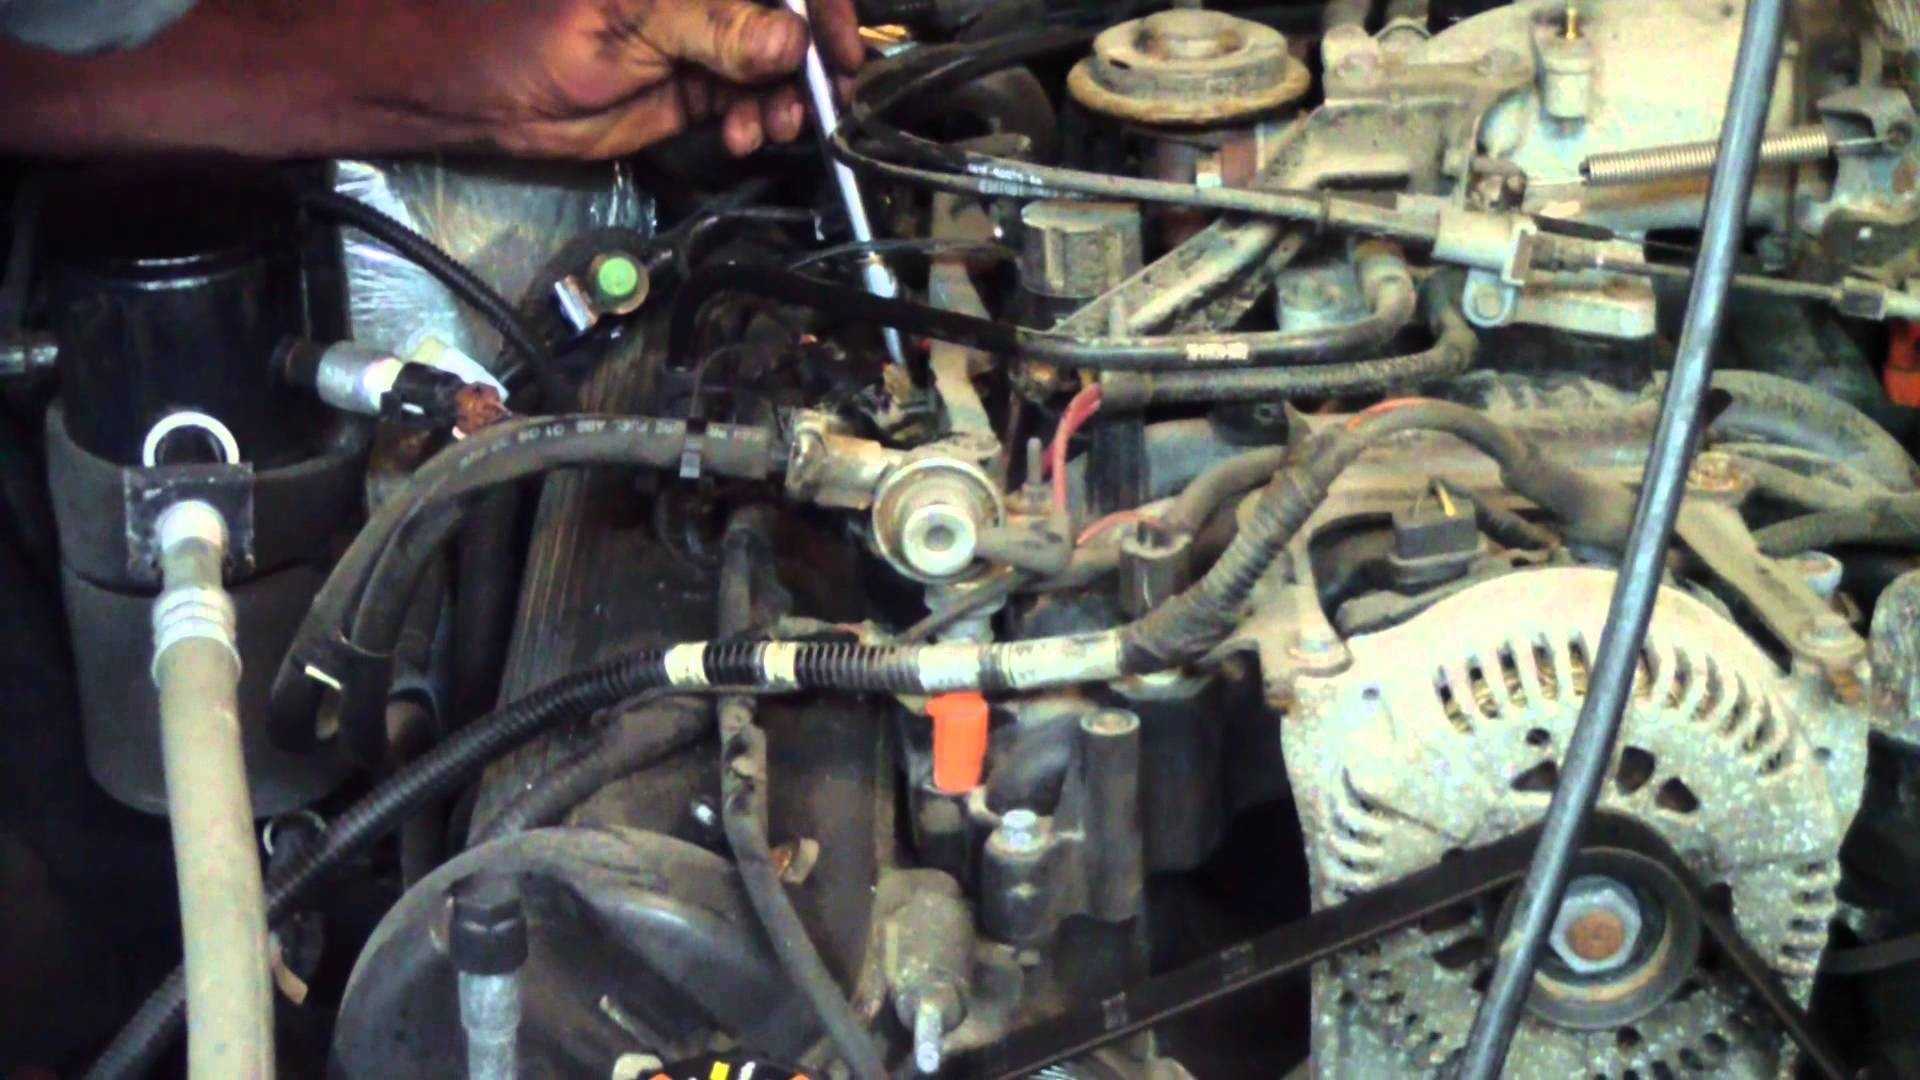 Grand Marquis Engine Diagram 2000 Grand Marquis Spark Plug Change How to 4 6l Of Grand Marquis Engine Diagram